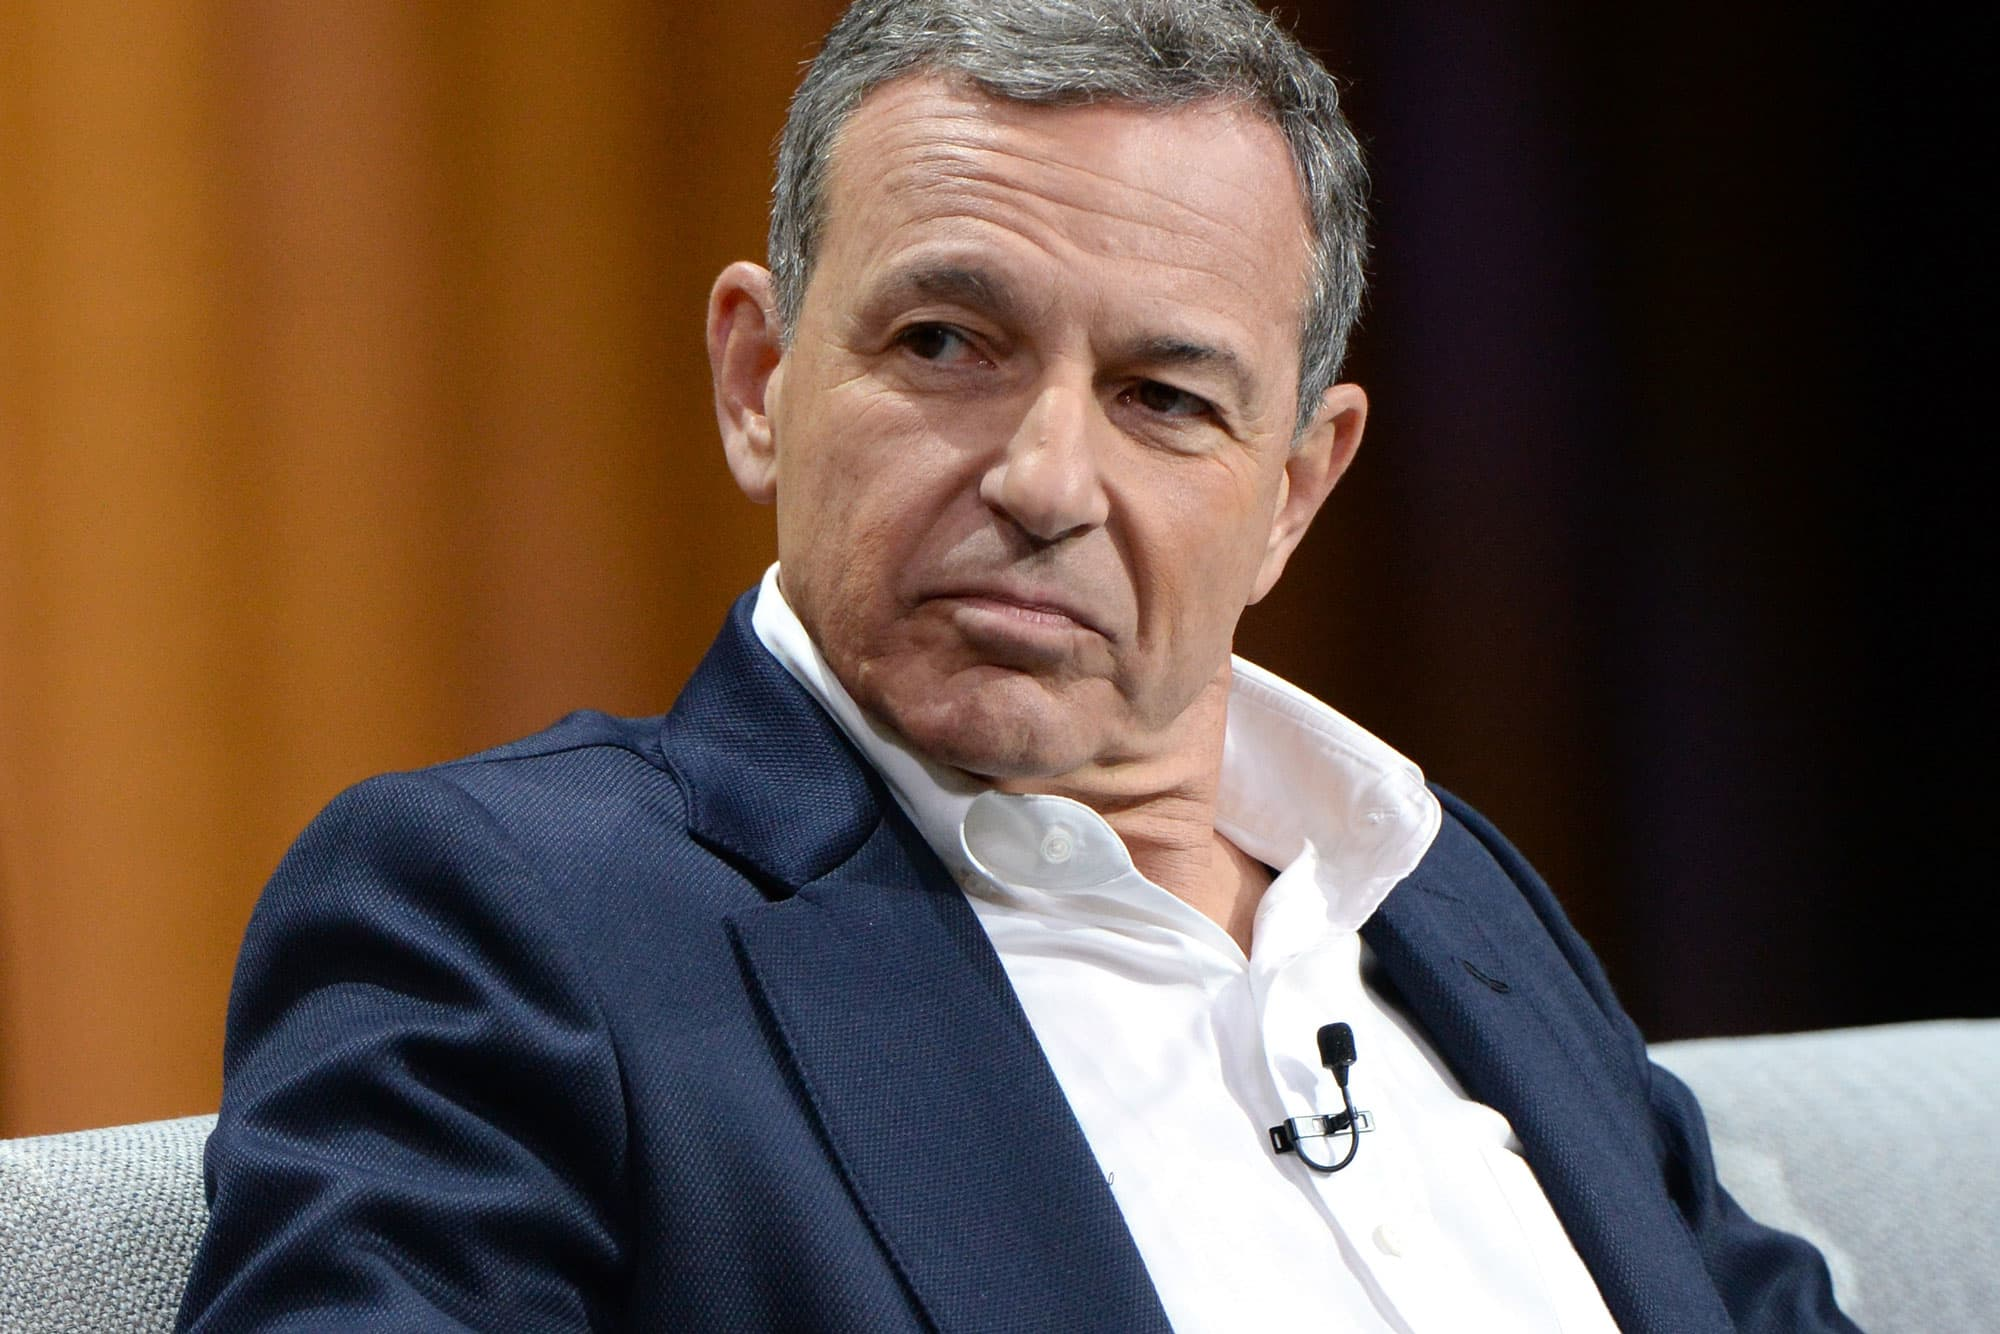 CEO of the Walt Disney Company, Bob Iger.